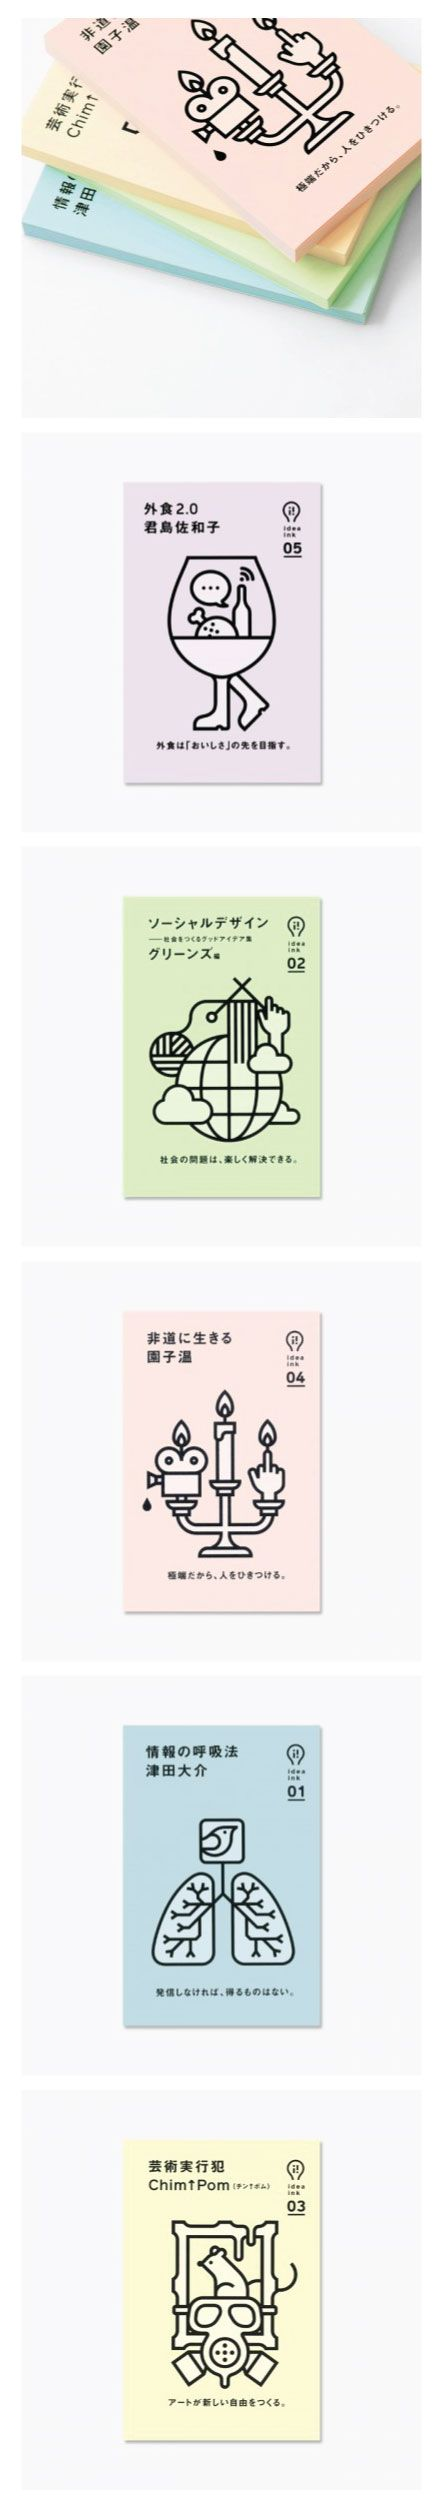 "idea ink is a series of Japanese books focusing on the theme of ""ideas of the future"", published by Asahi Press and designed by Tokyo-based design studio Groovisions."